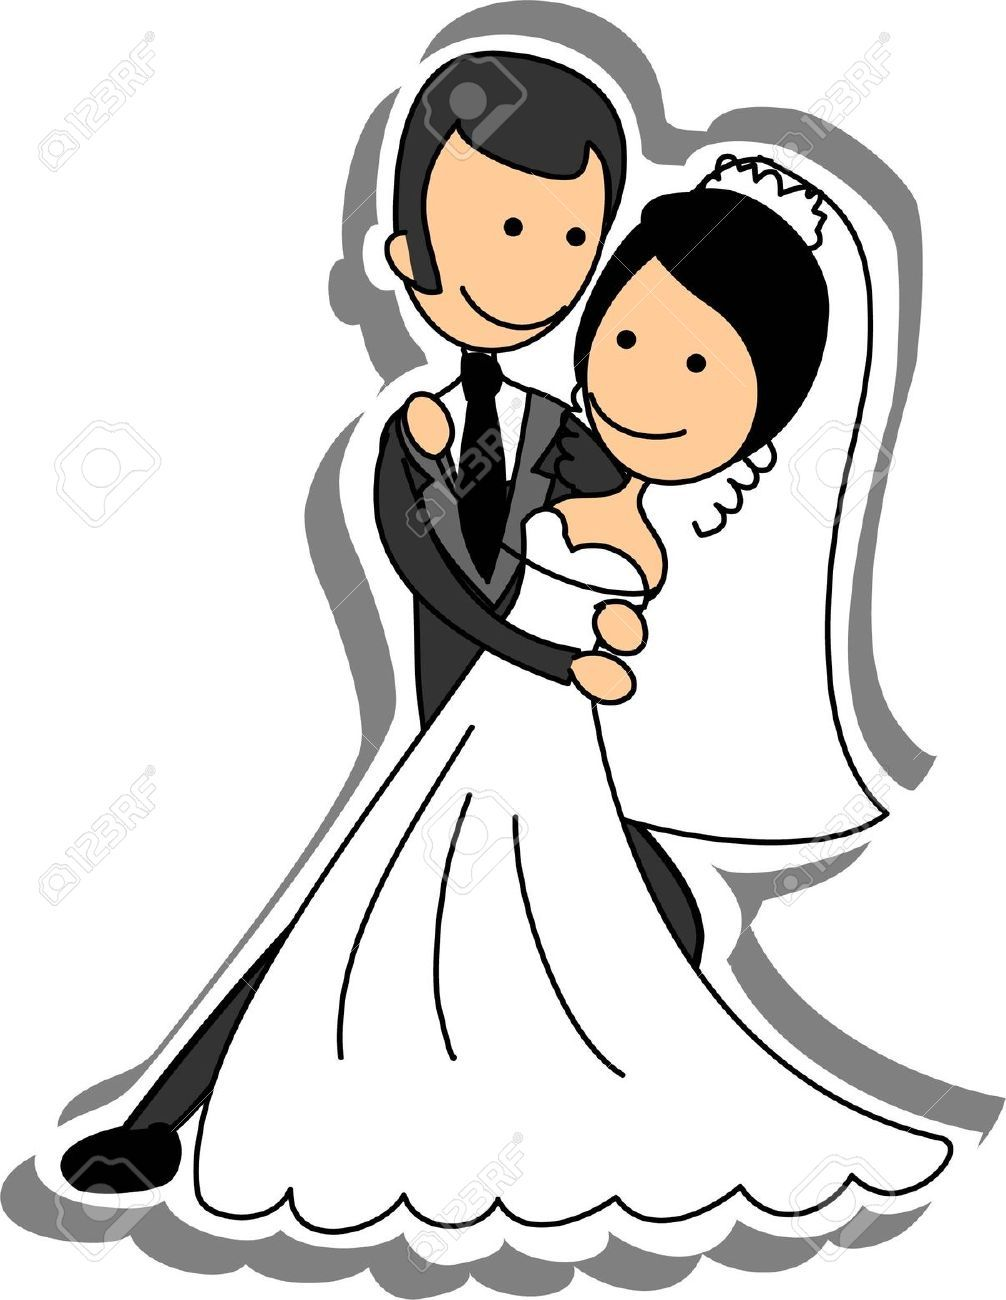 wedding picture bride and groom in love royalty free cliparts rh pinterest ca bride and groom cartoon free image bride and groom cartoon free